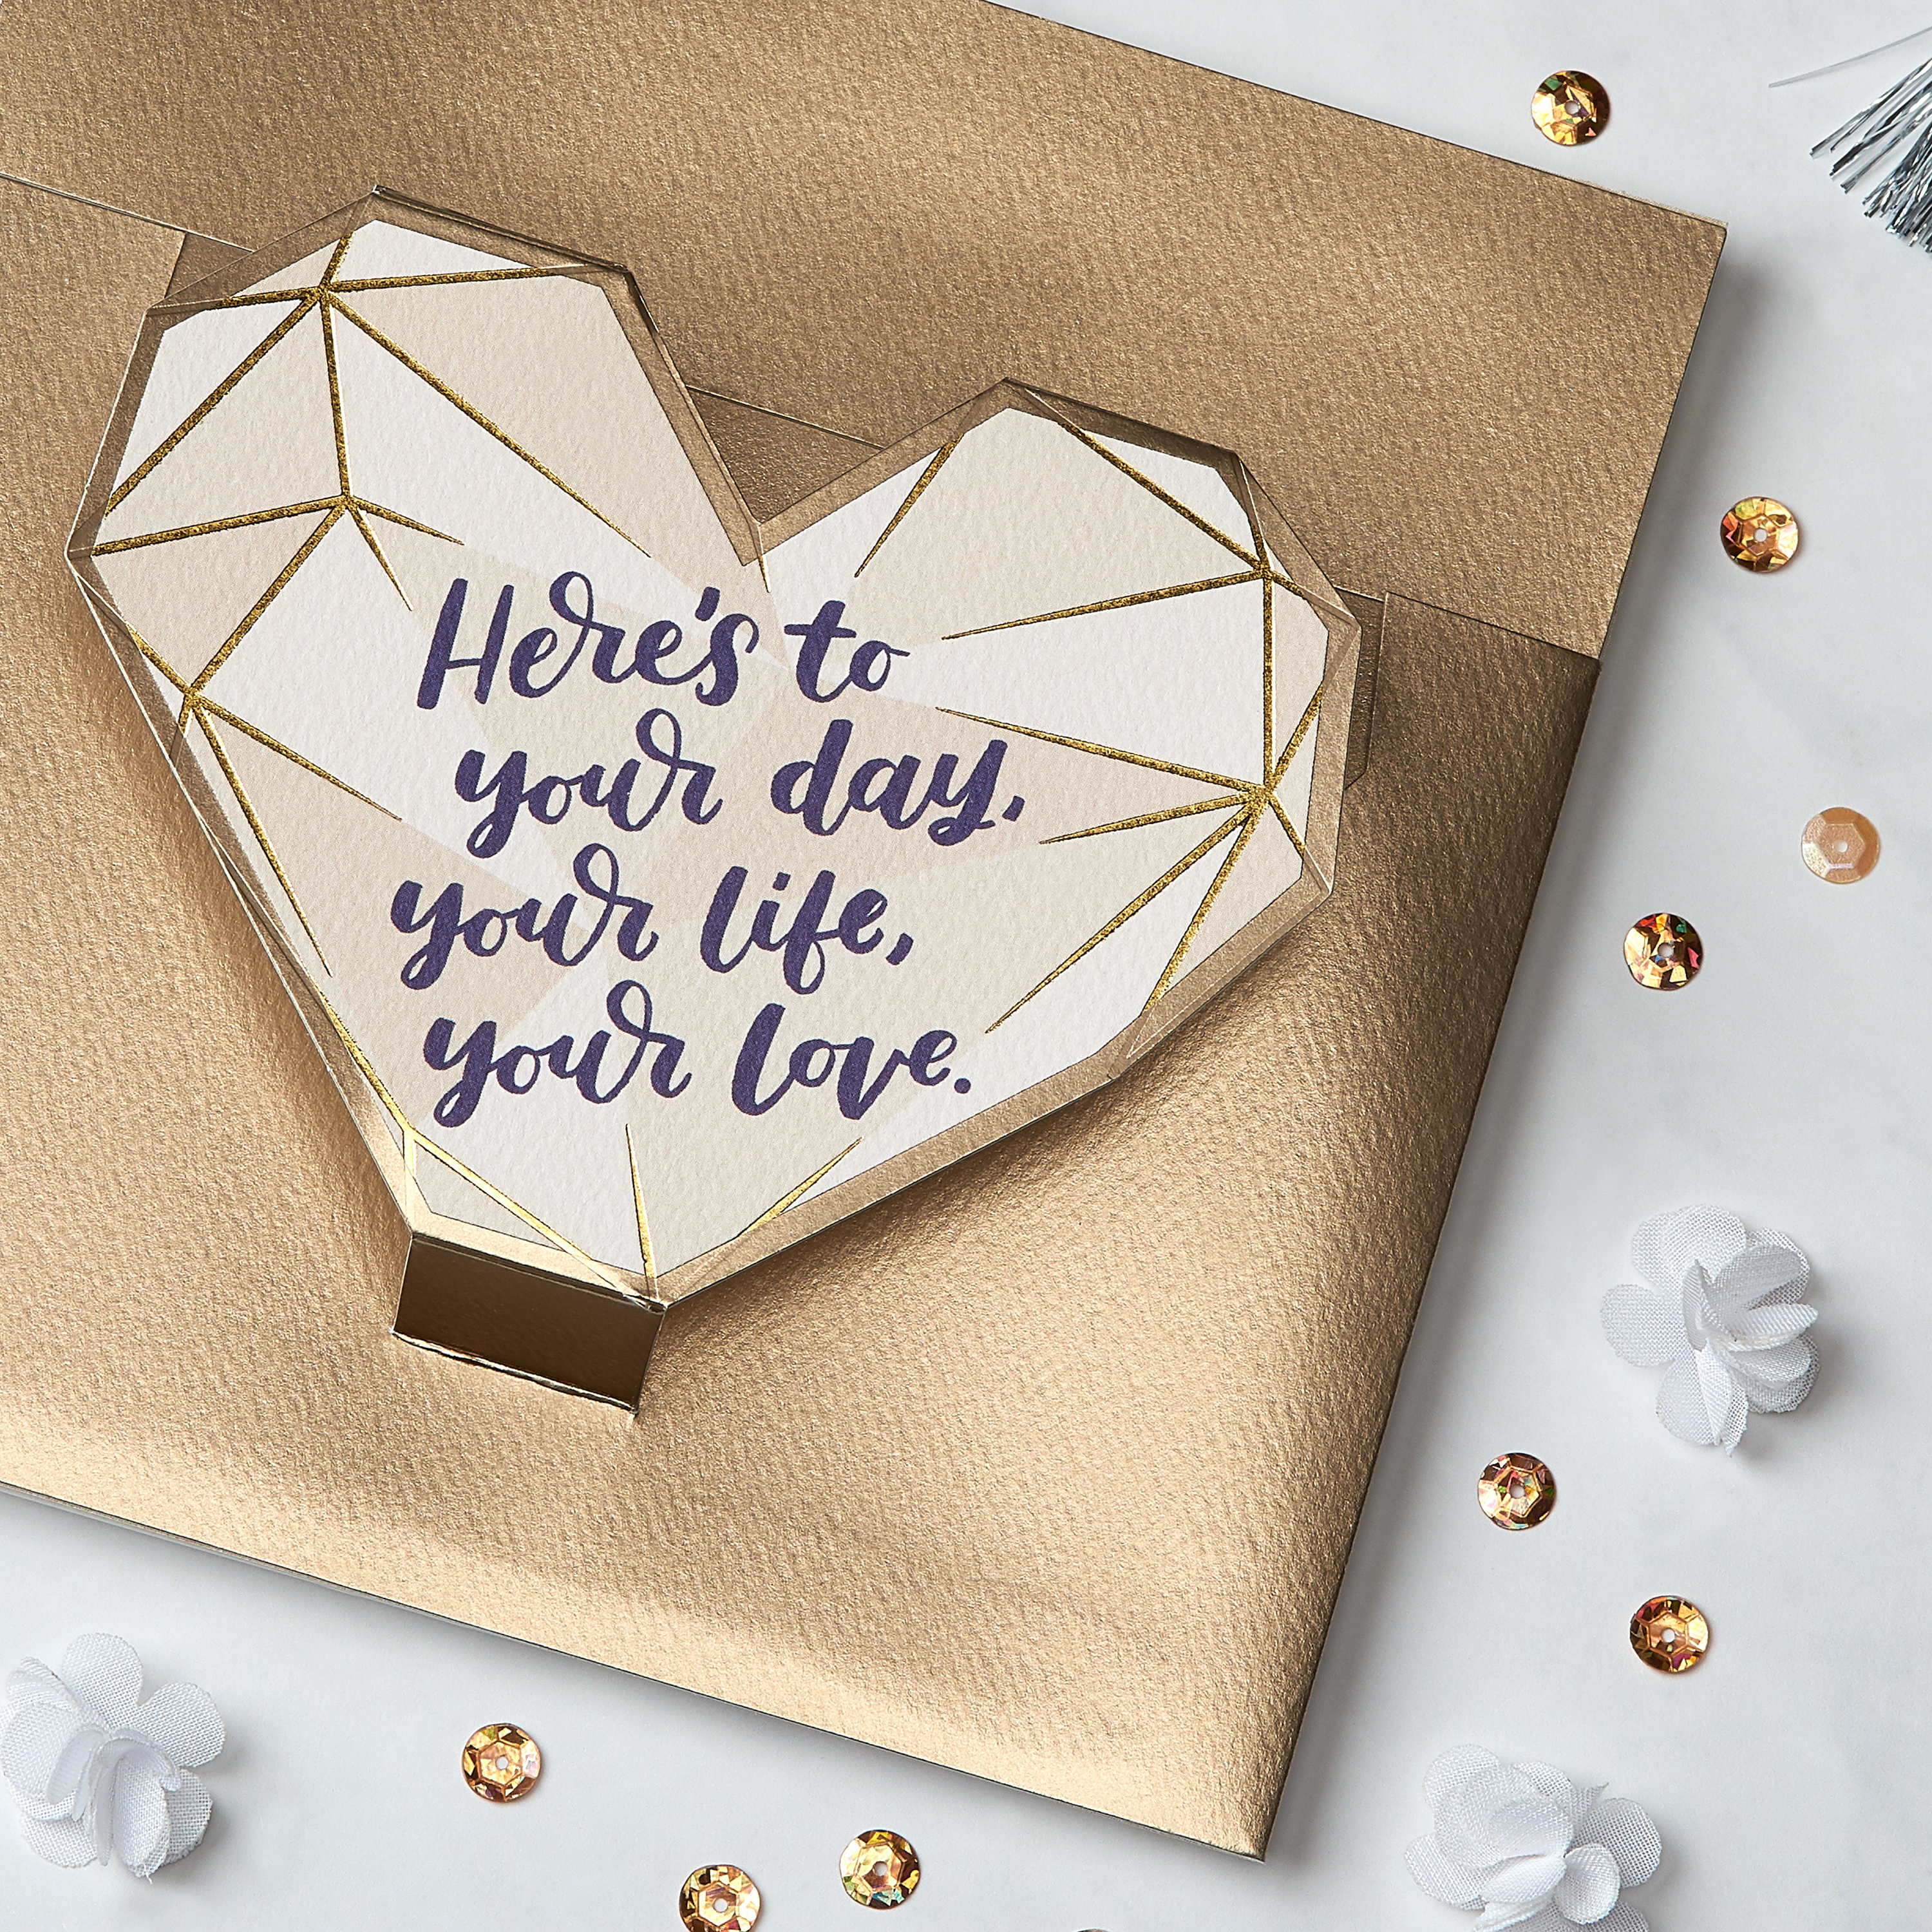 Your Day Greeting Card for Couple - Engagement, Wedding, Anniversary image